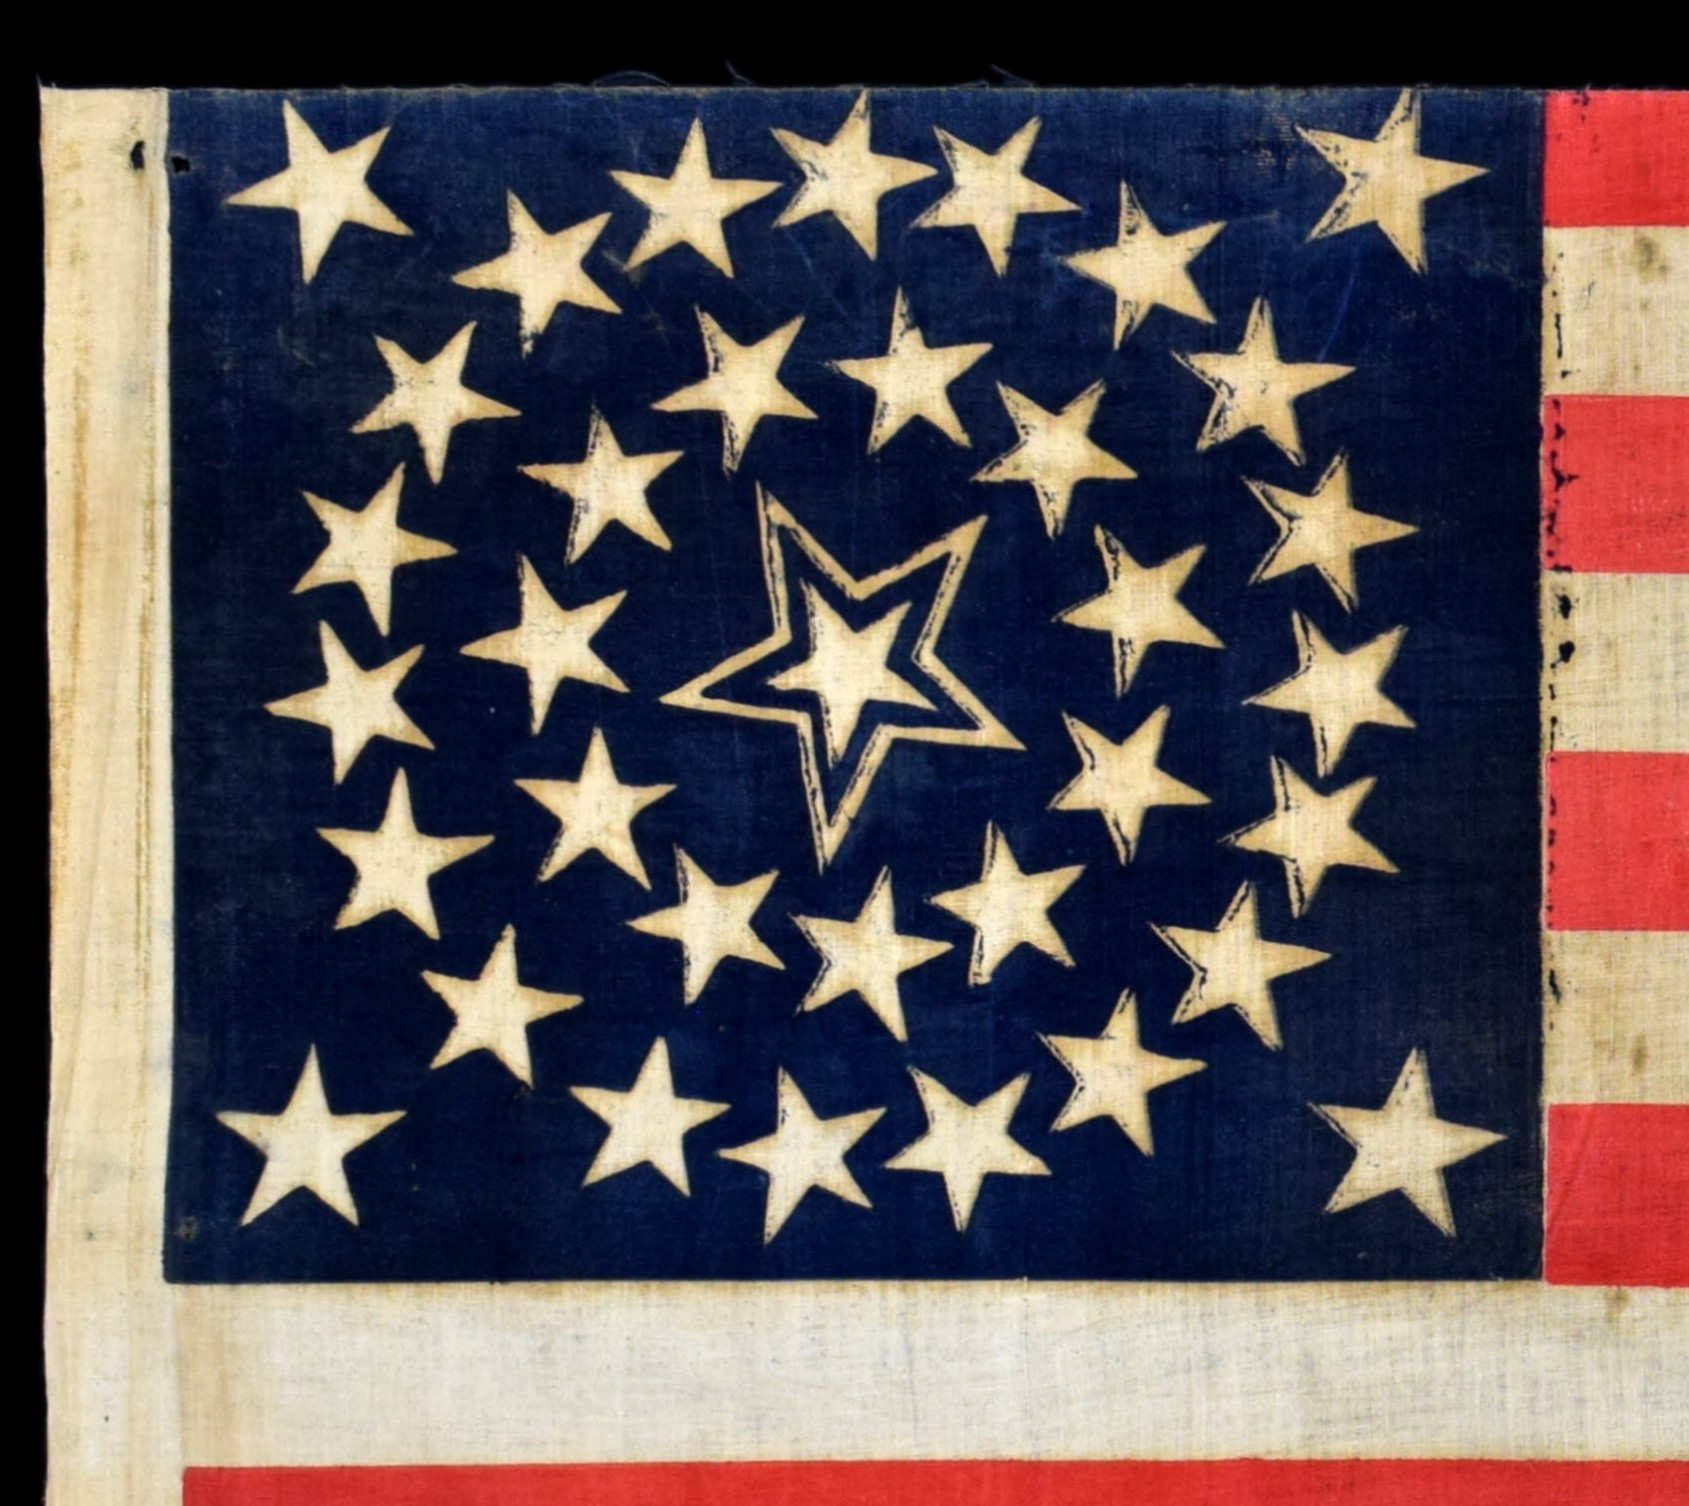 35 Star Antique Flag with Haloed Center Star